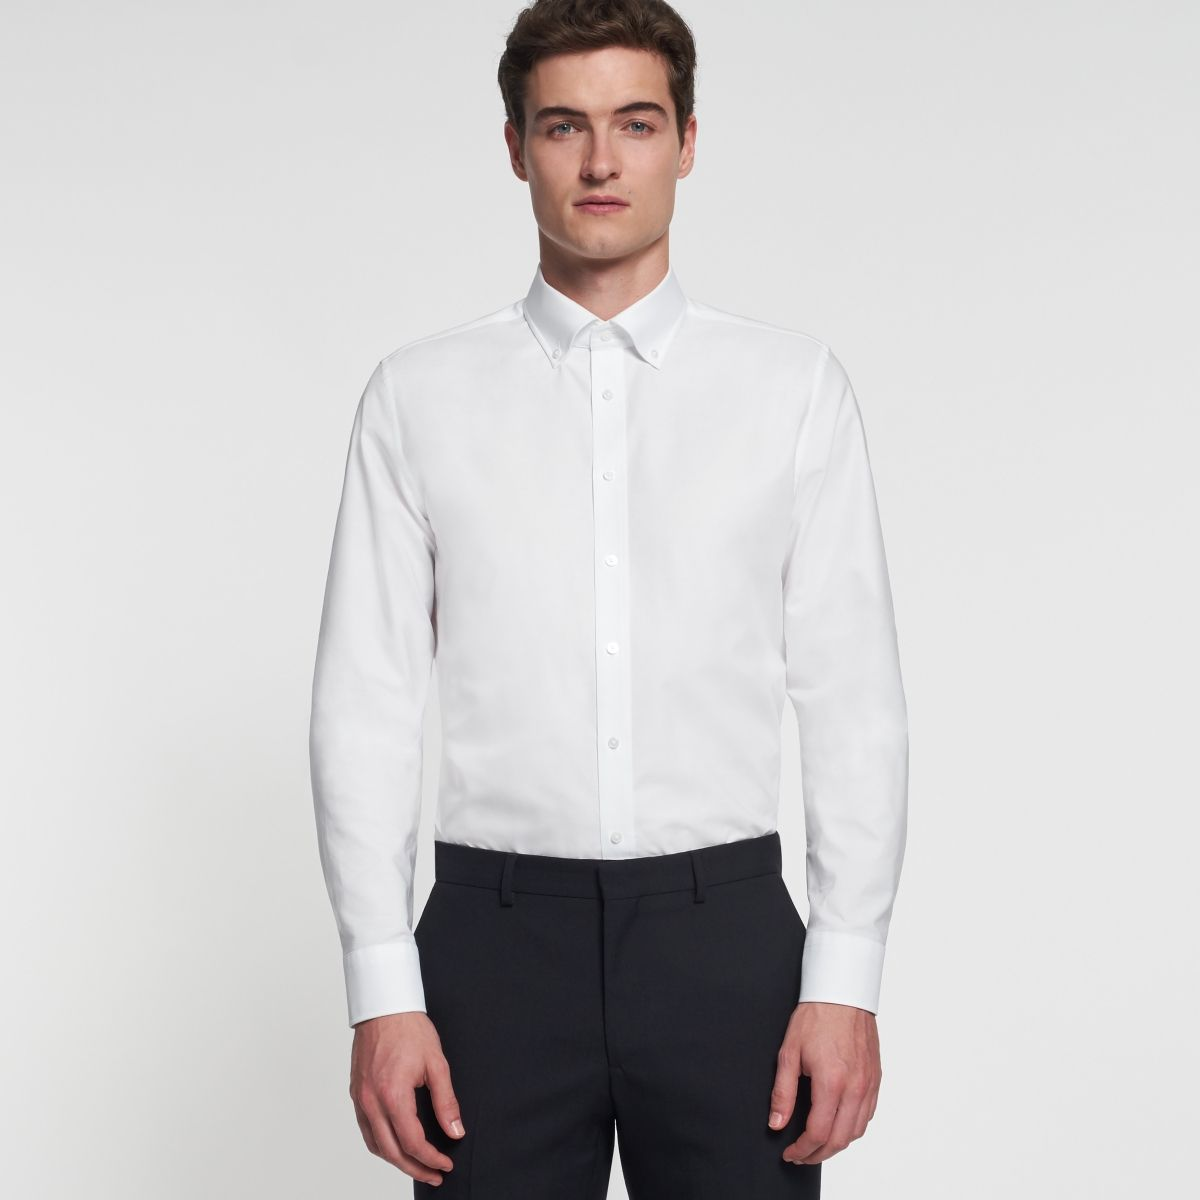 Chemise slim Printed blanc oxford